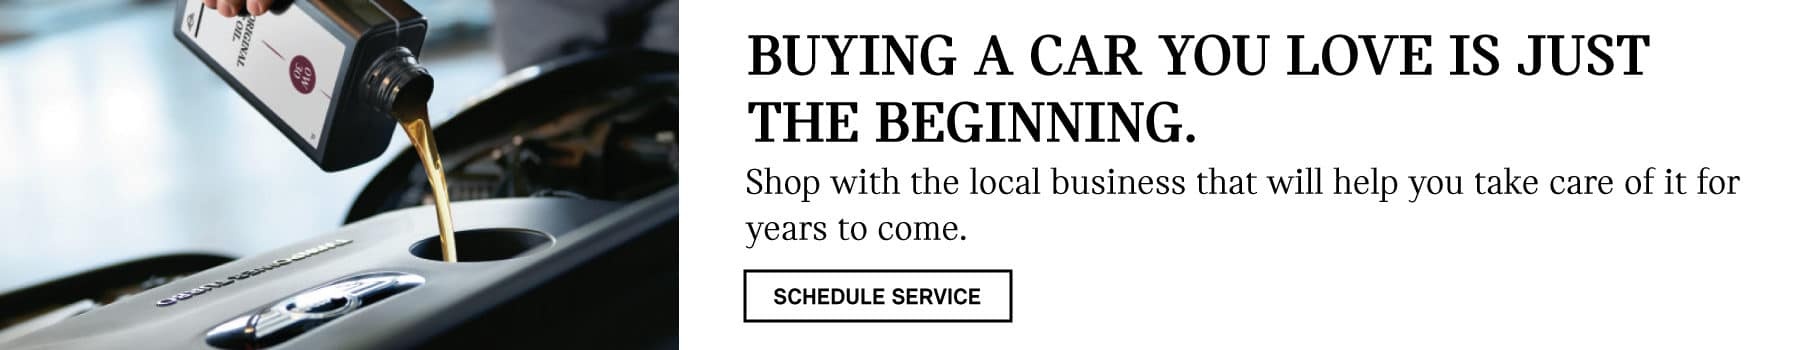 BUYING A CAR YOU LOVE IS JUST THE BEGINNING. Shop with the local business that will help you take care of it for years to come. SCHEDULE SERVICE BUTTON.